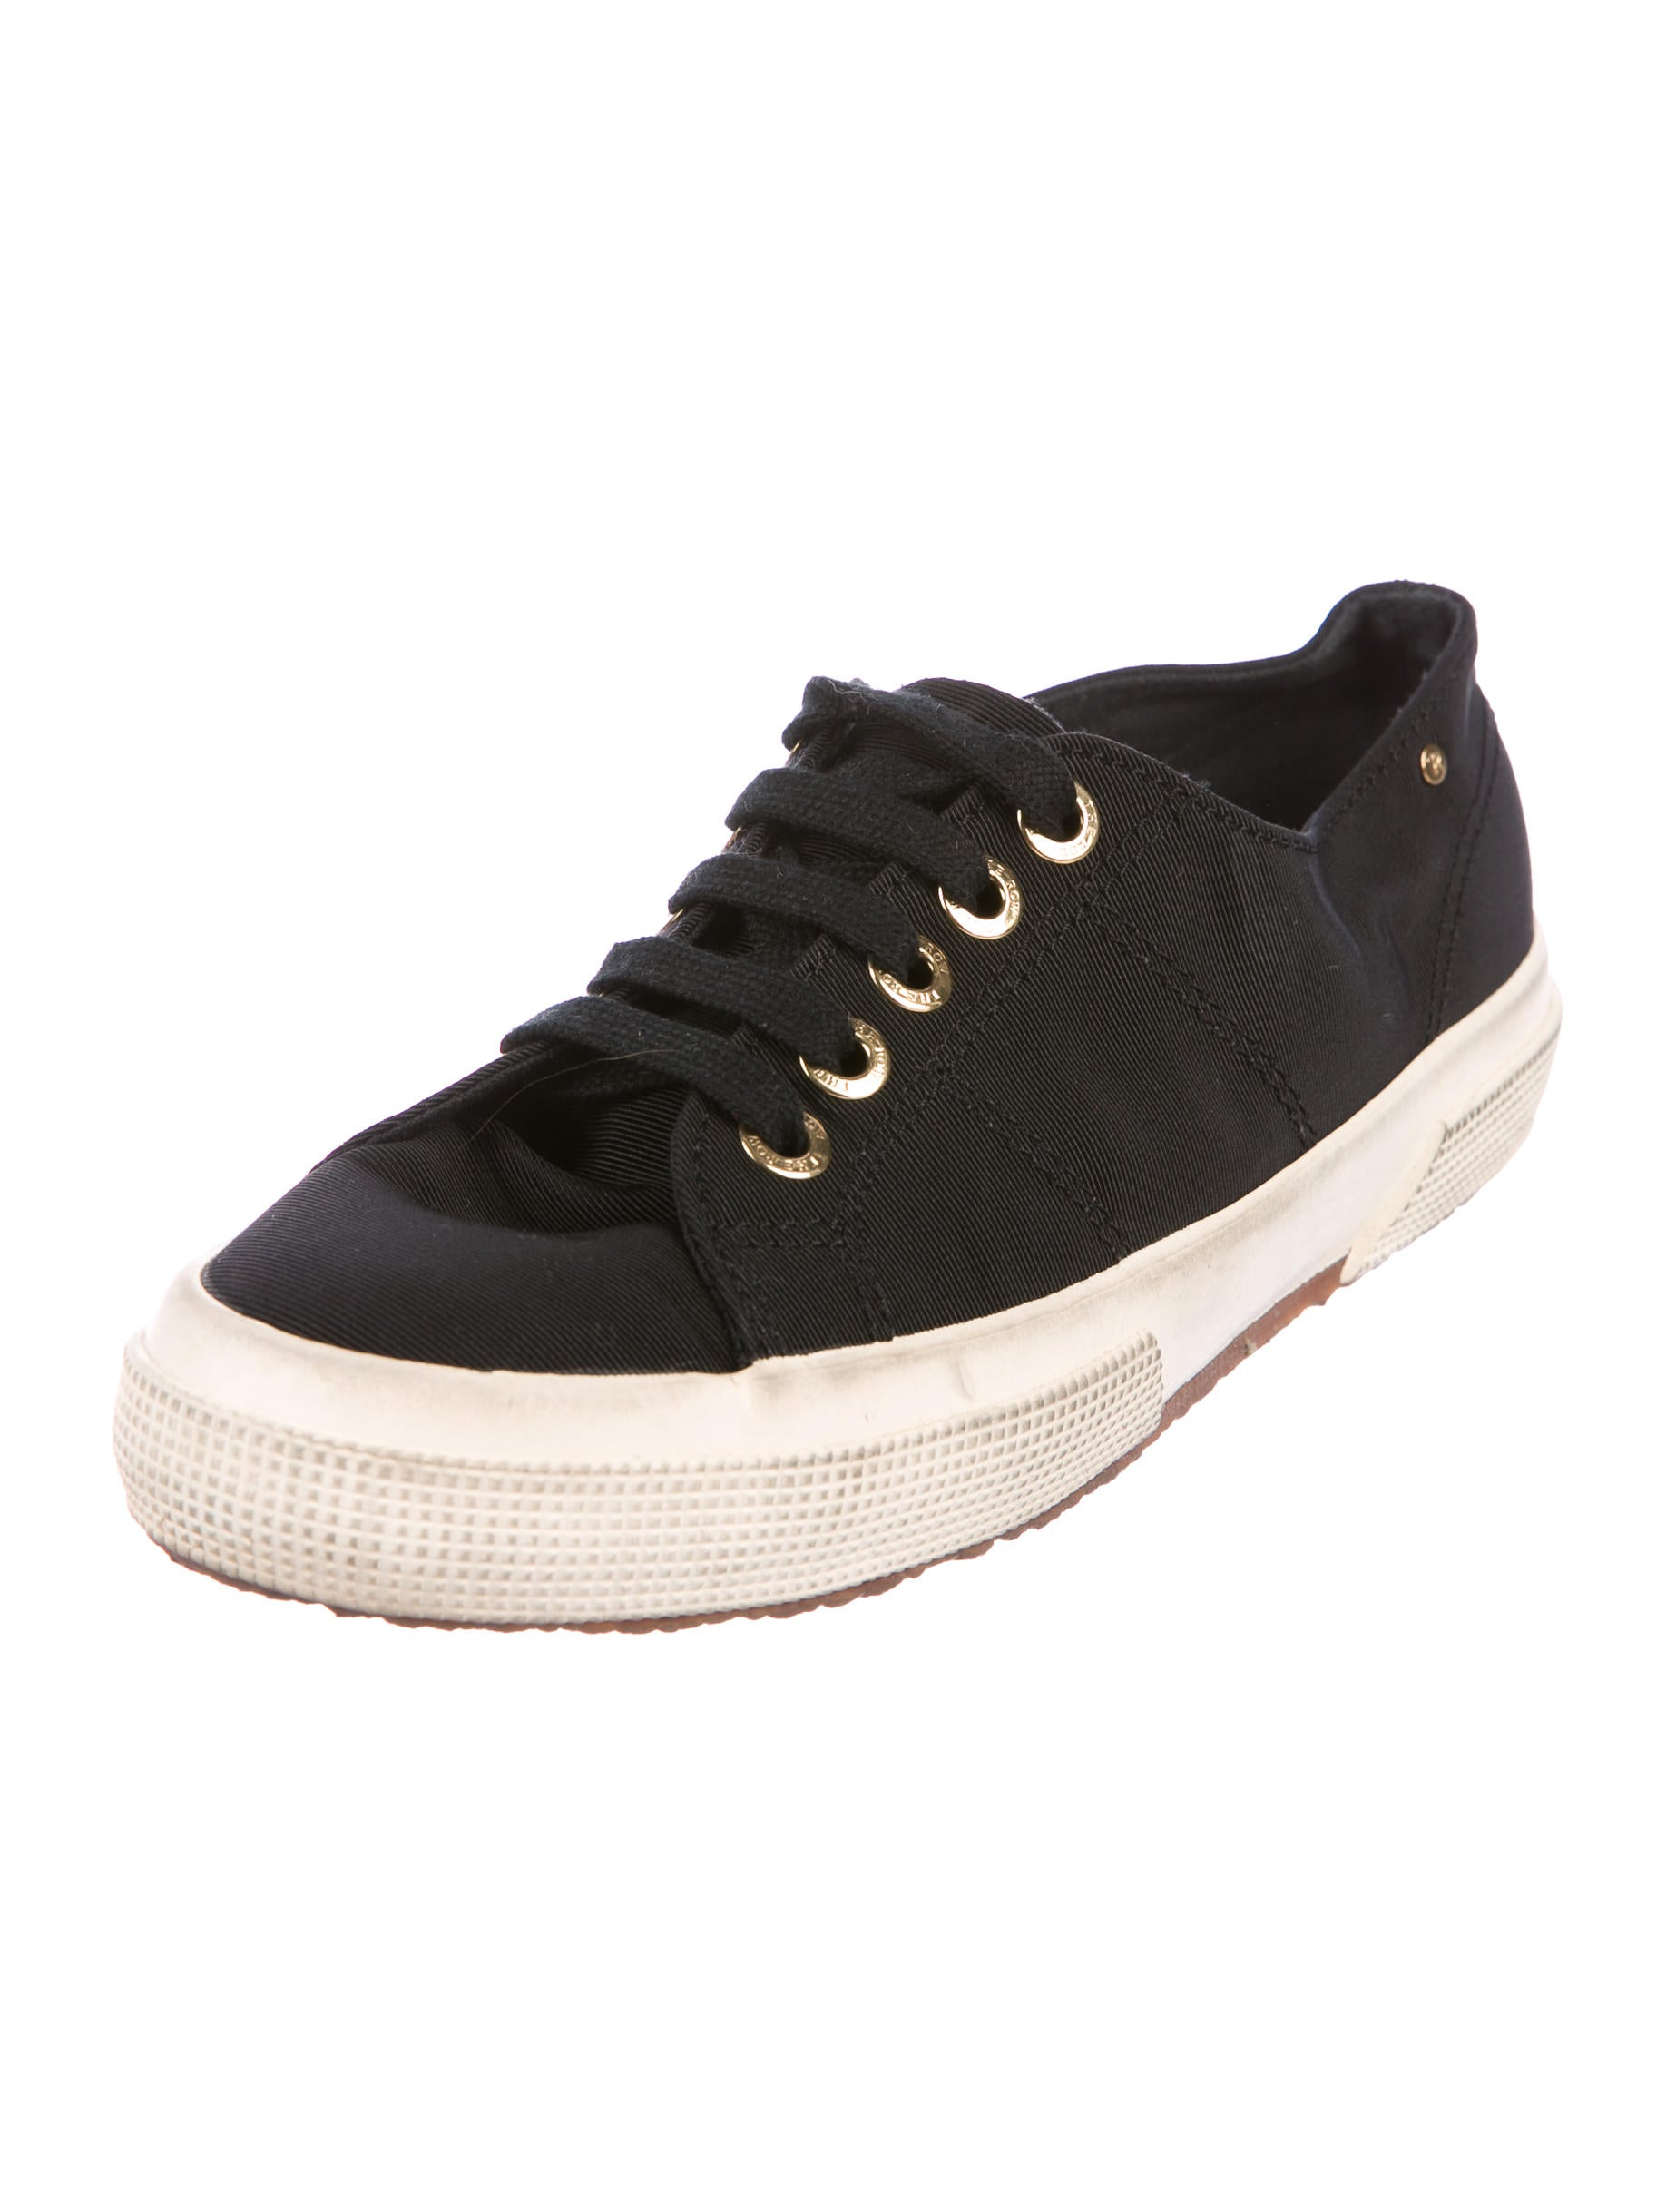 discount classic official cheap price Superga x The Row Canvas Low-Top Sneakers new cheap online BlUo0e1Ns1